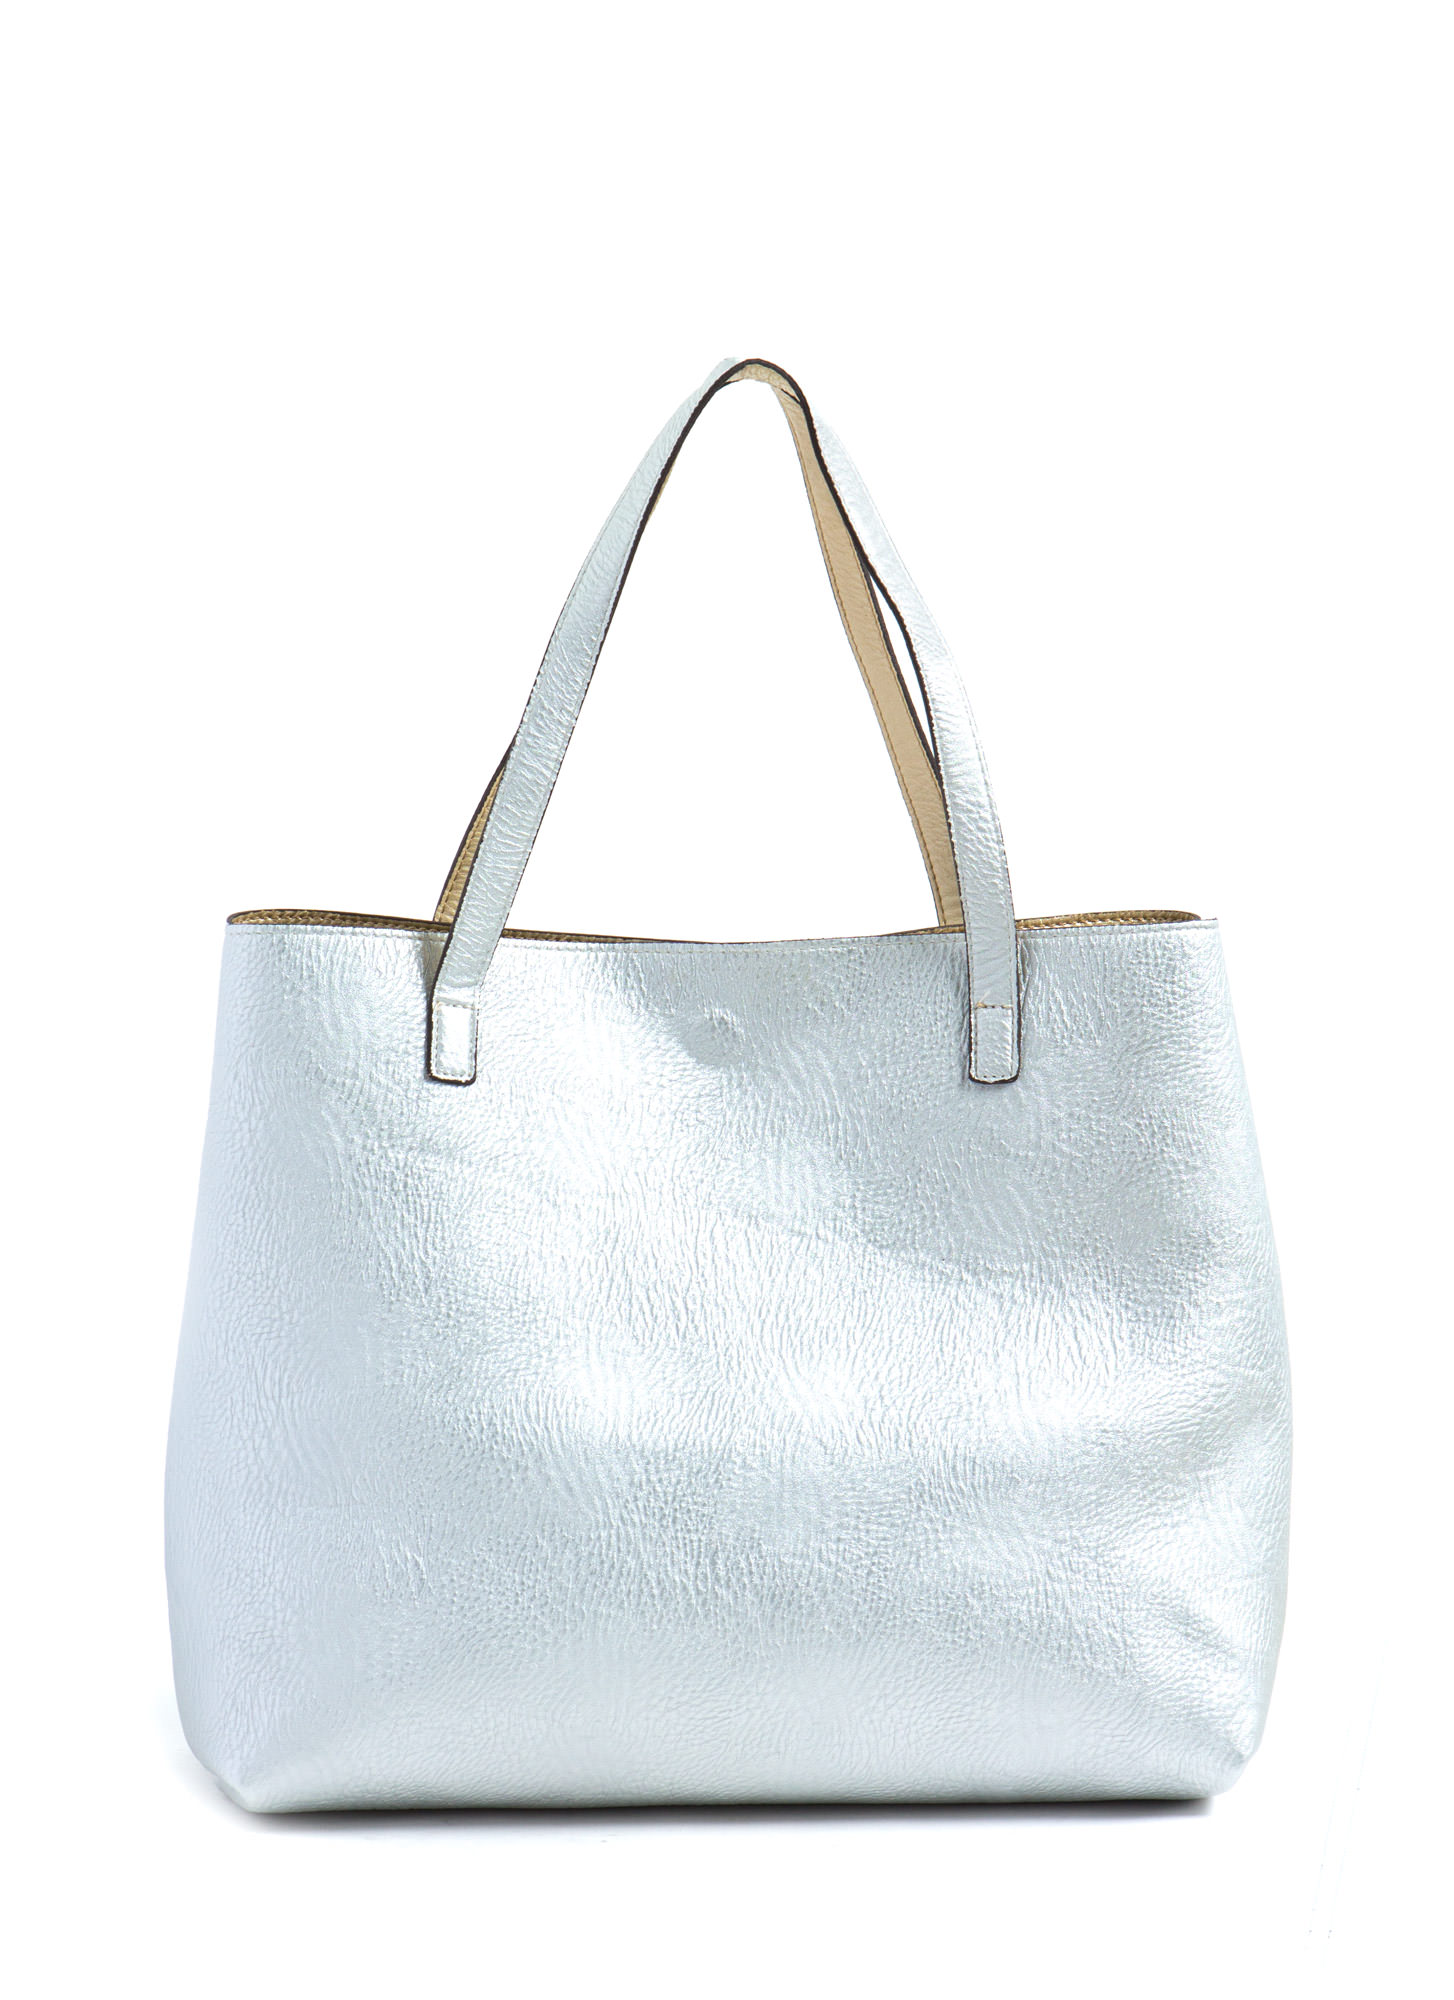 Street Level Two-Tone Reversible Tote Bag GOLDSILVER